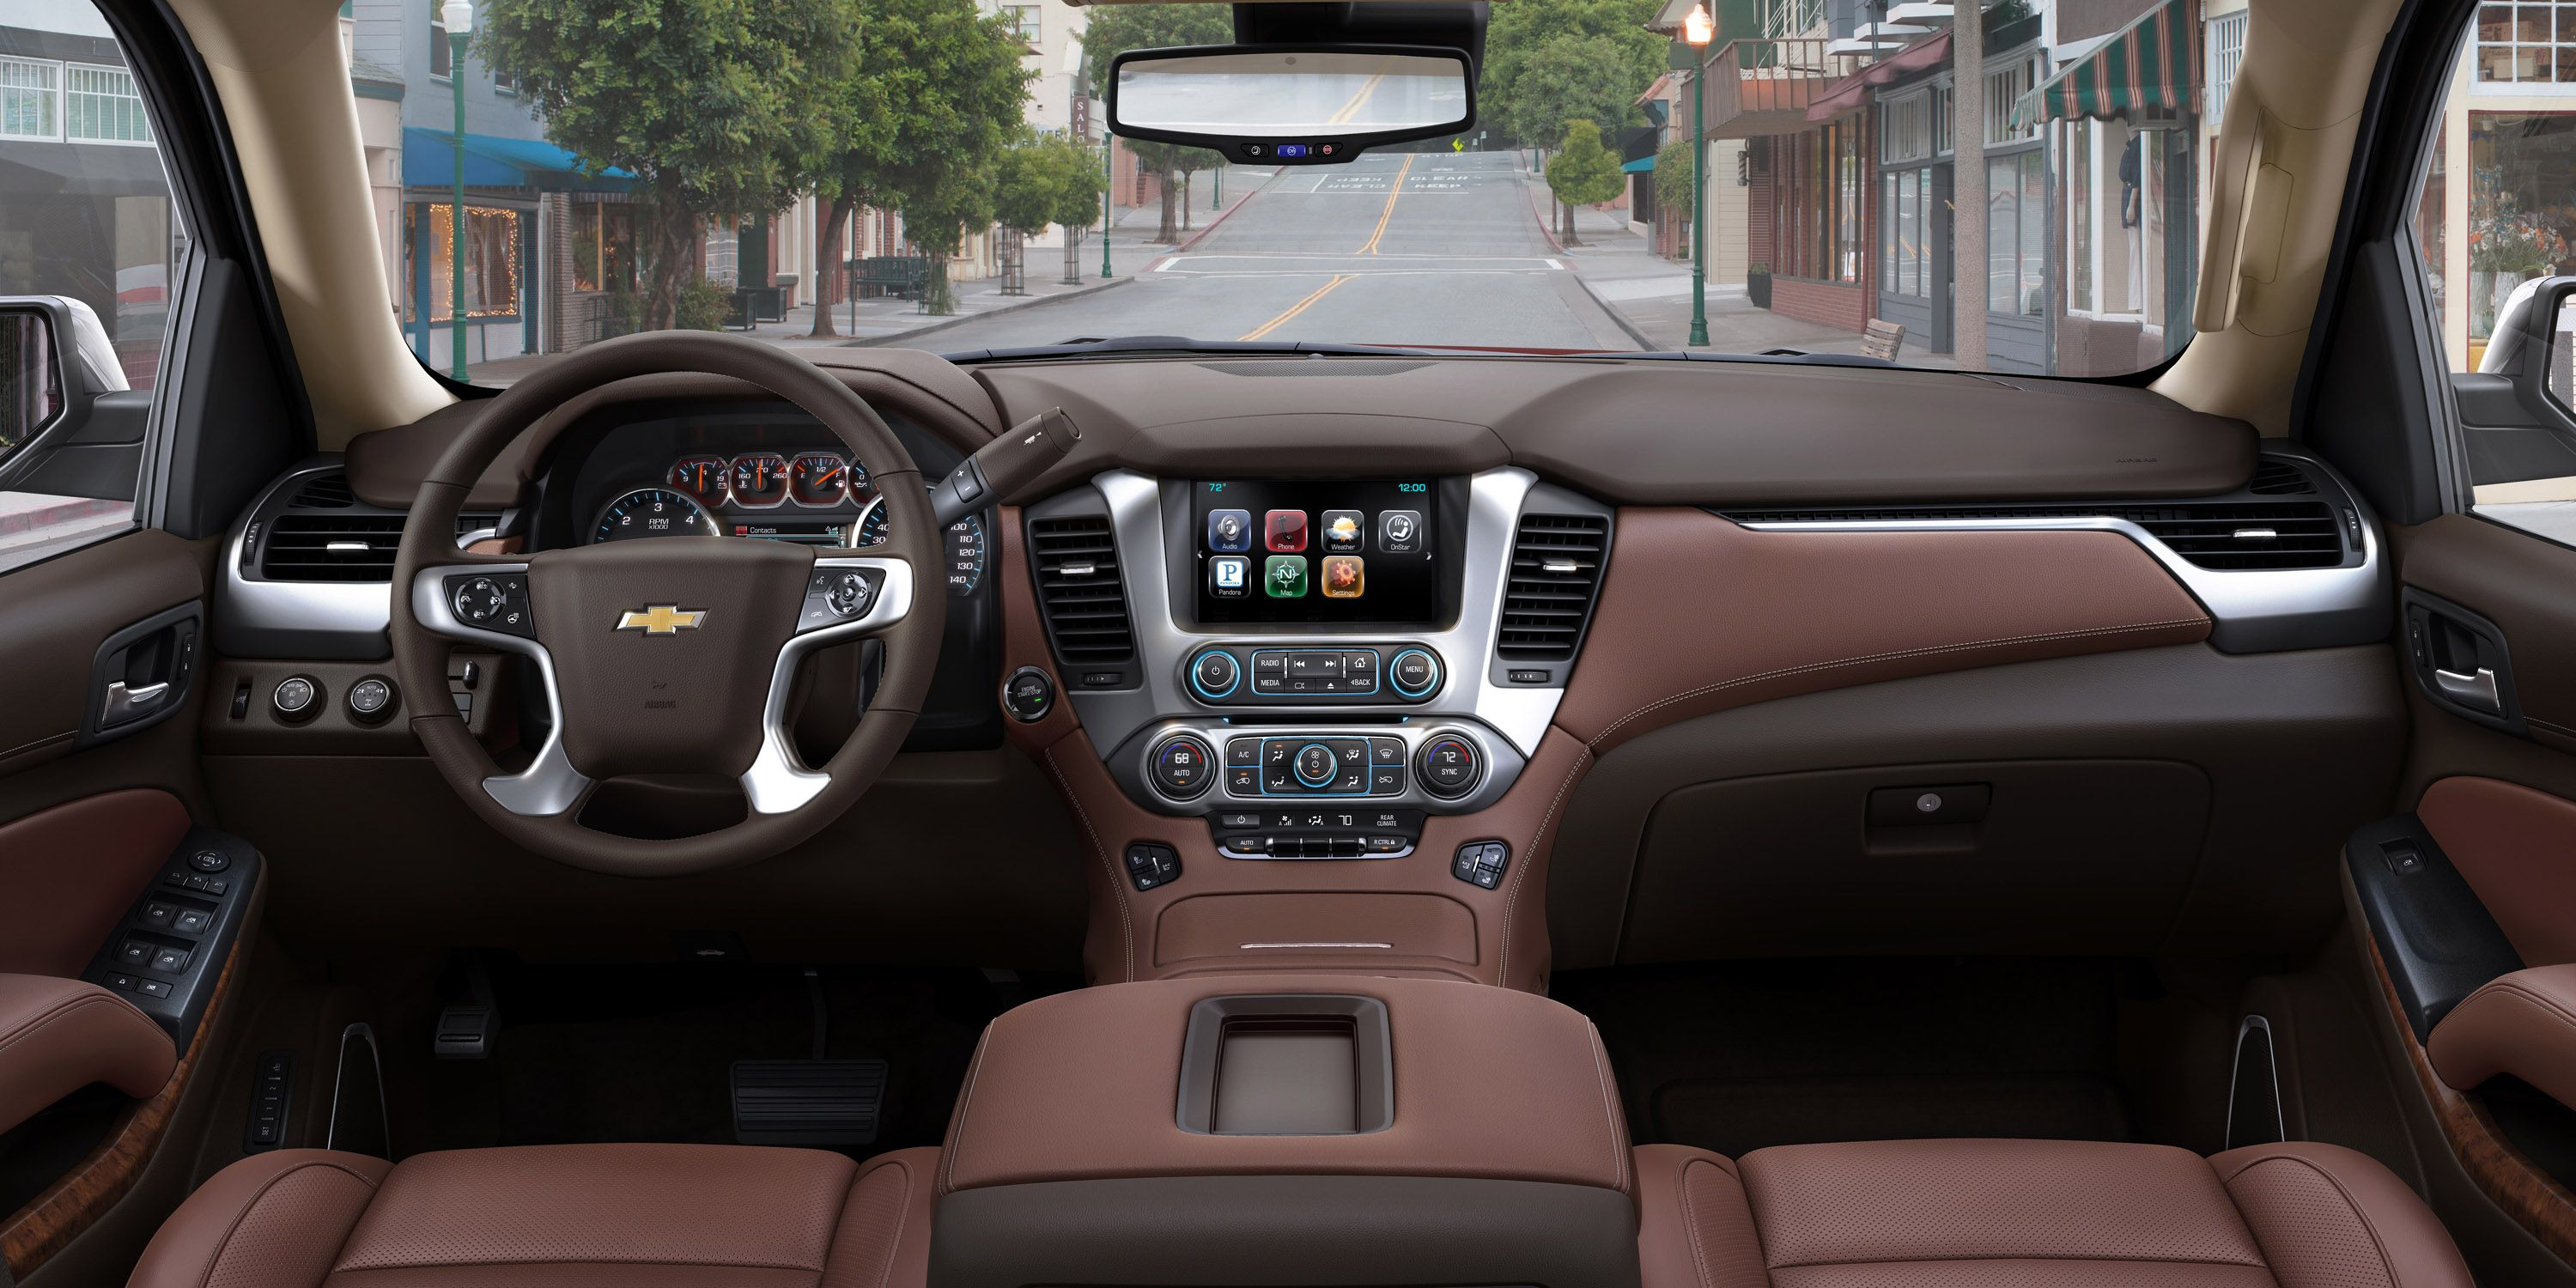 2015 Chevrolet Tahoe Interior | Interior Design | Chevy ...